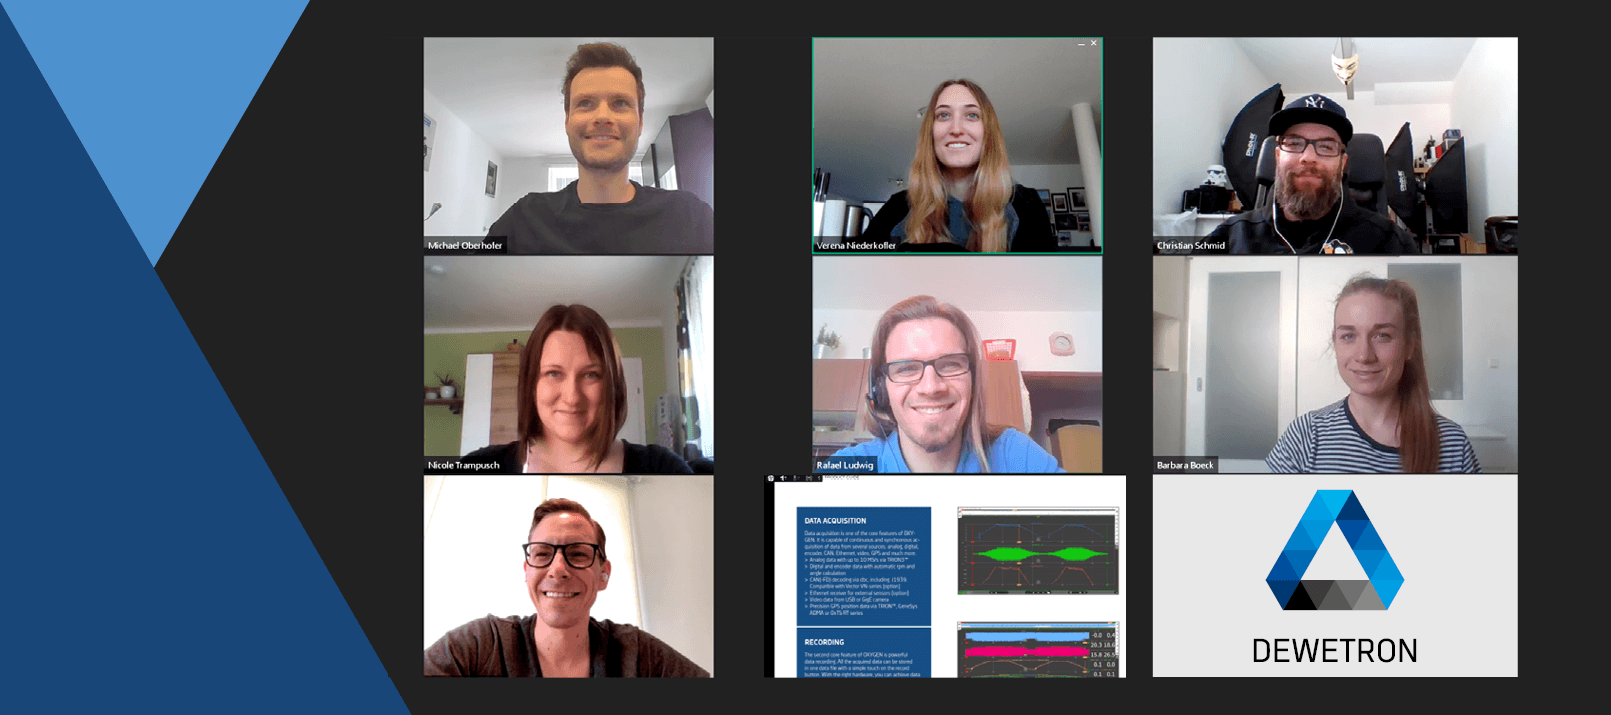 Screenshot of a DEWETRON Online Meeting in the Employees Home Office